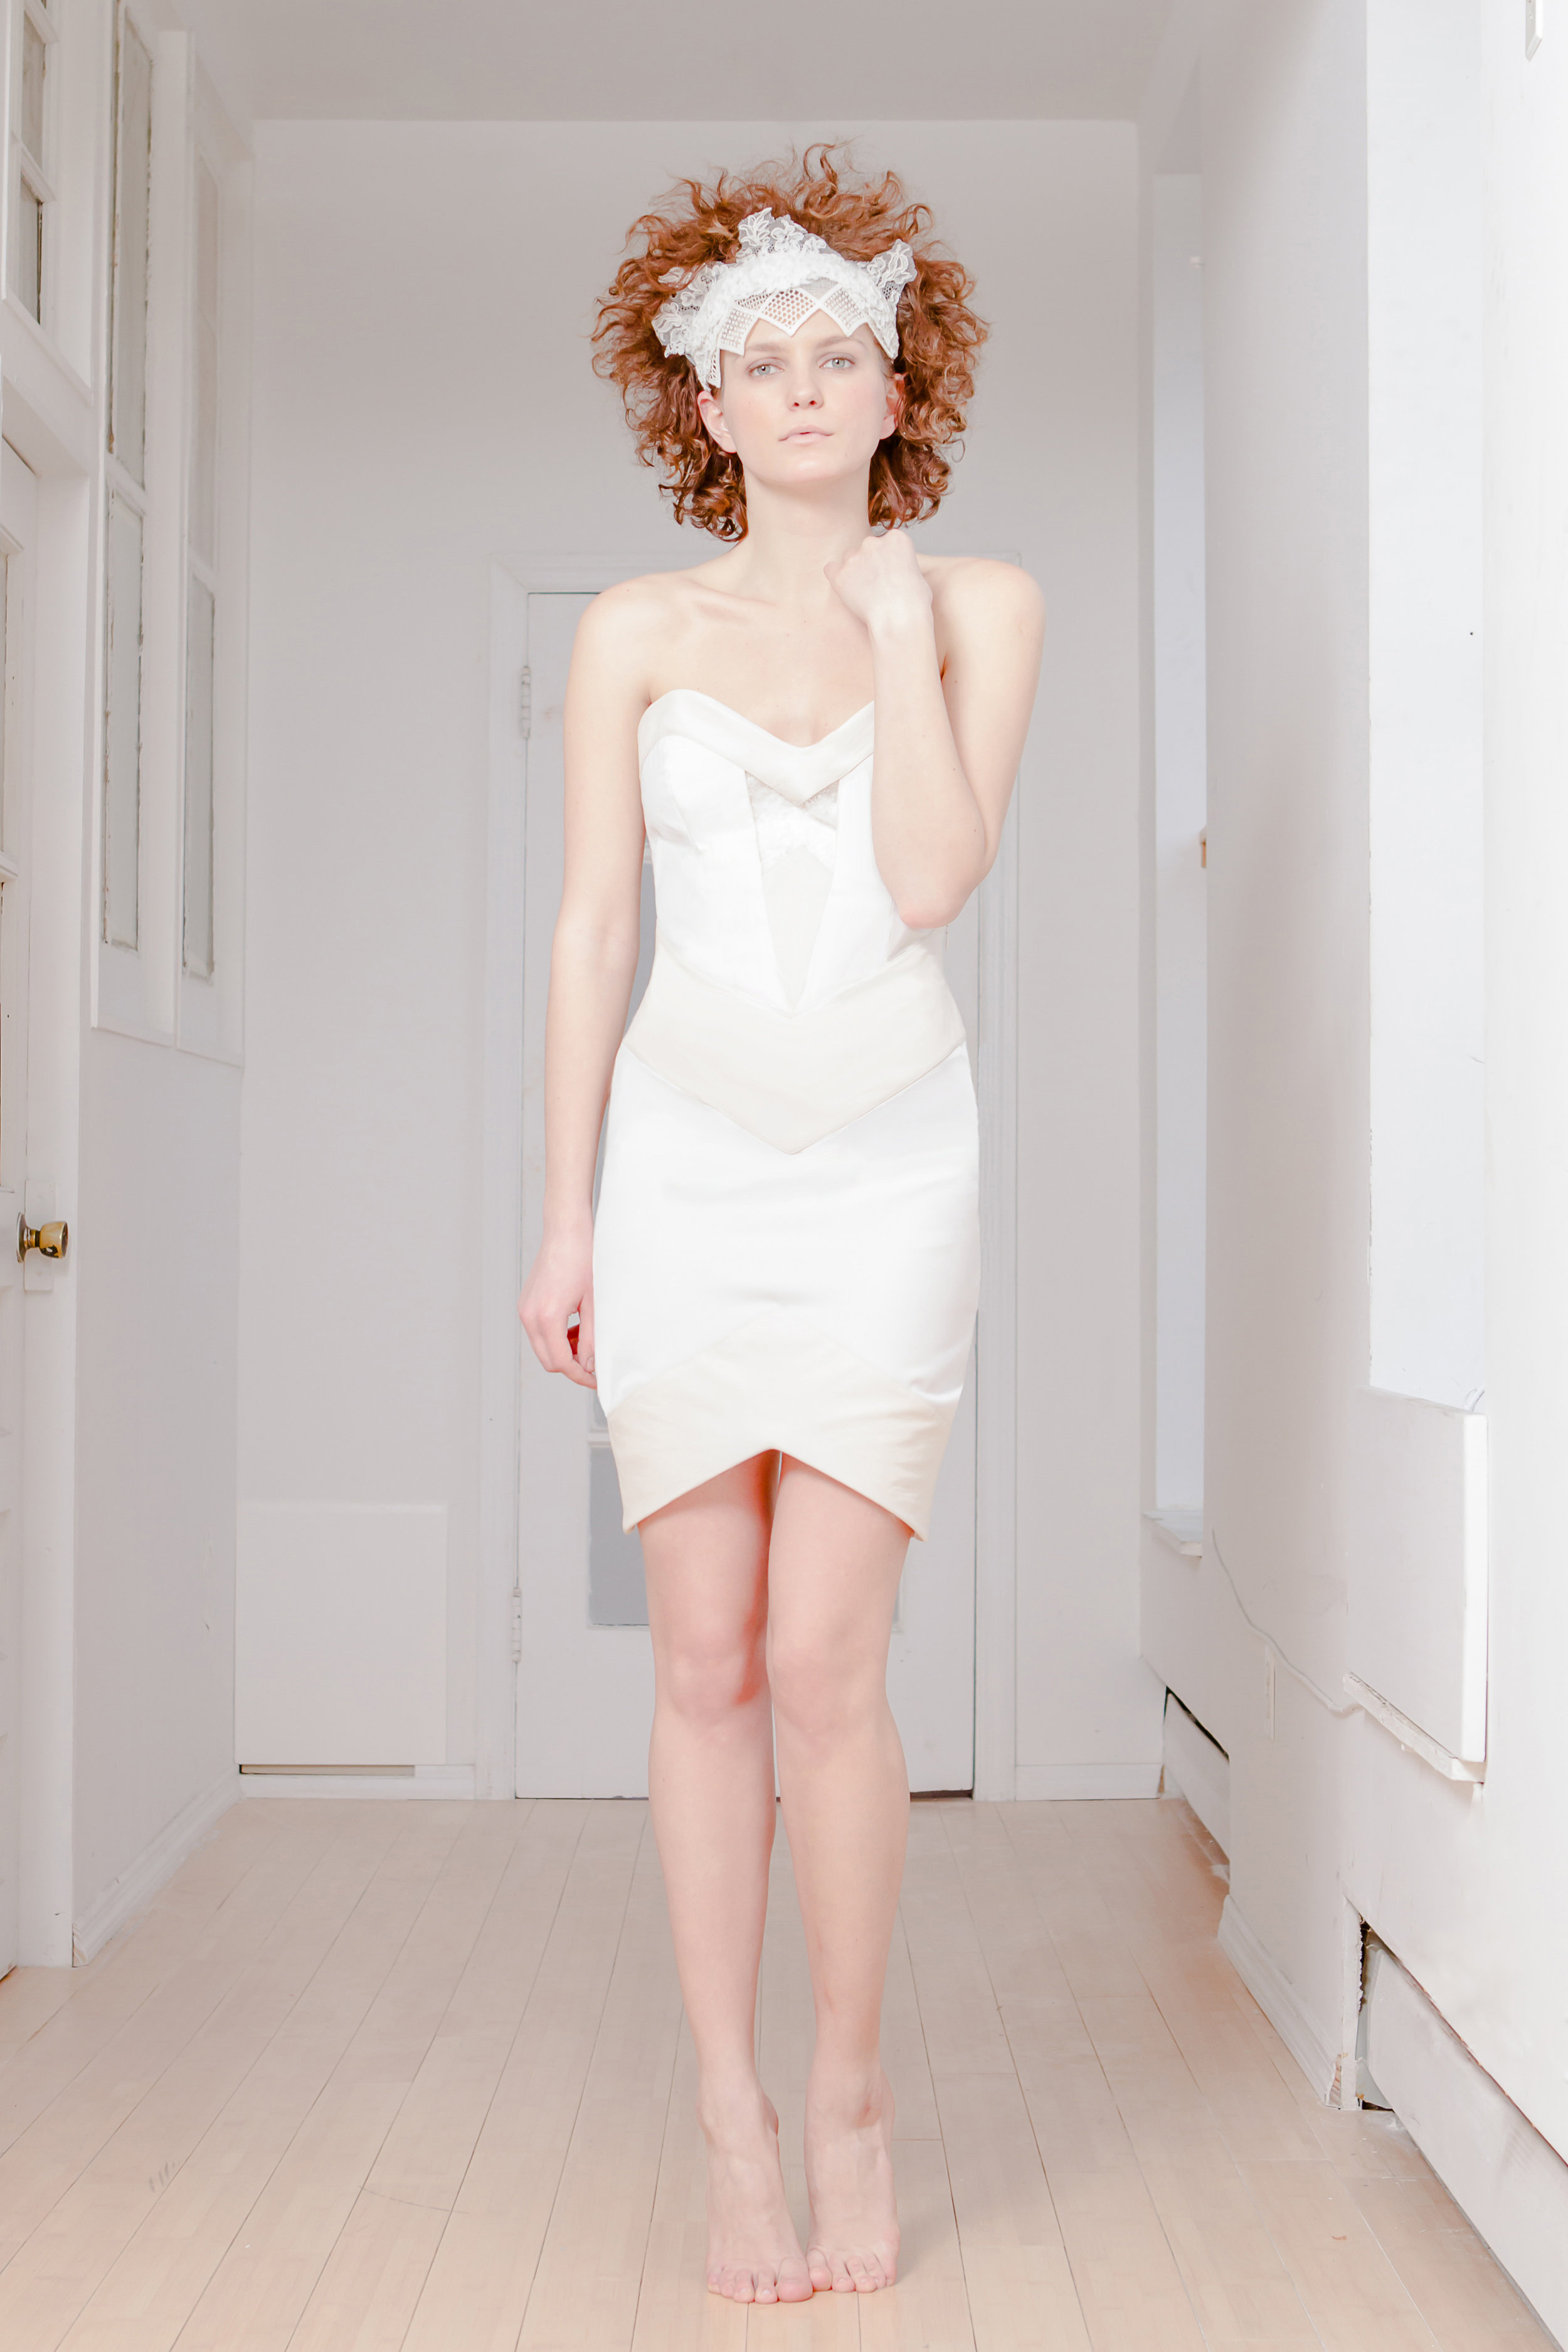 SNOW GEO DRESS  Ivory silk wool, leather, and clear mesh. Price upon request.